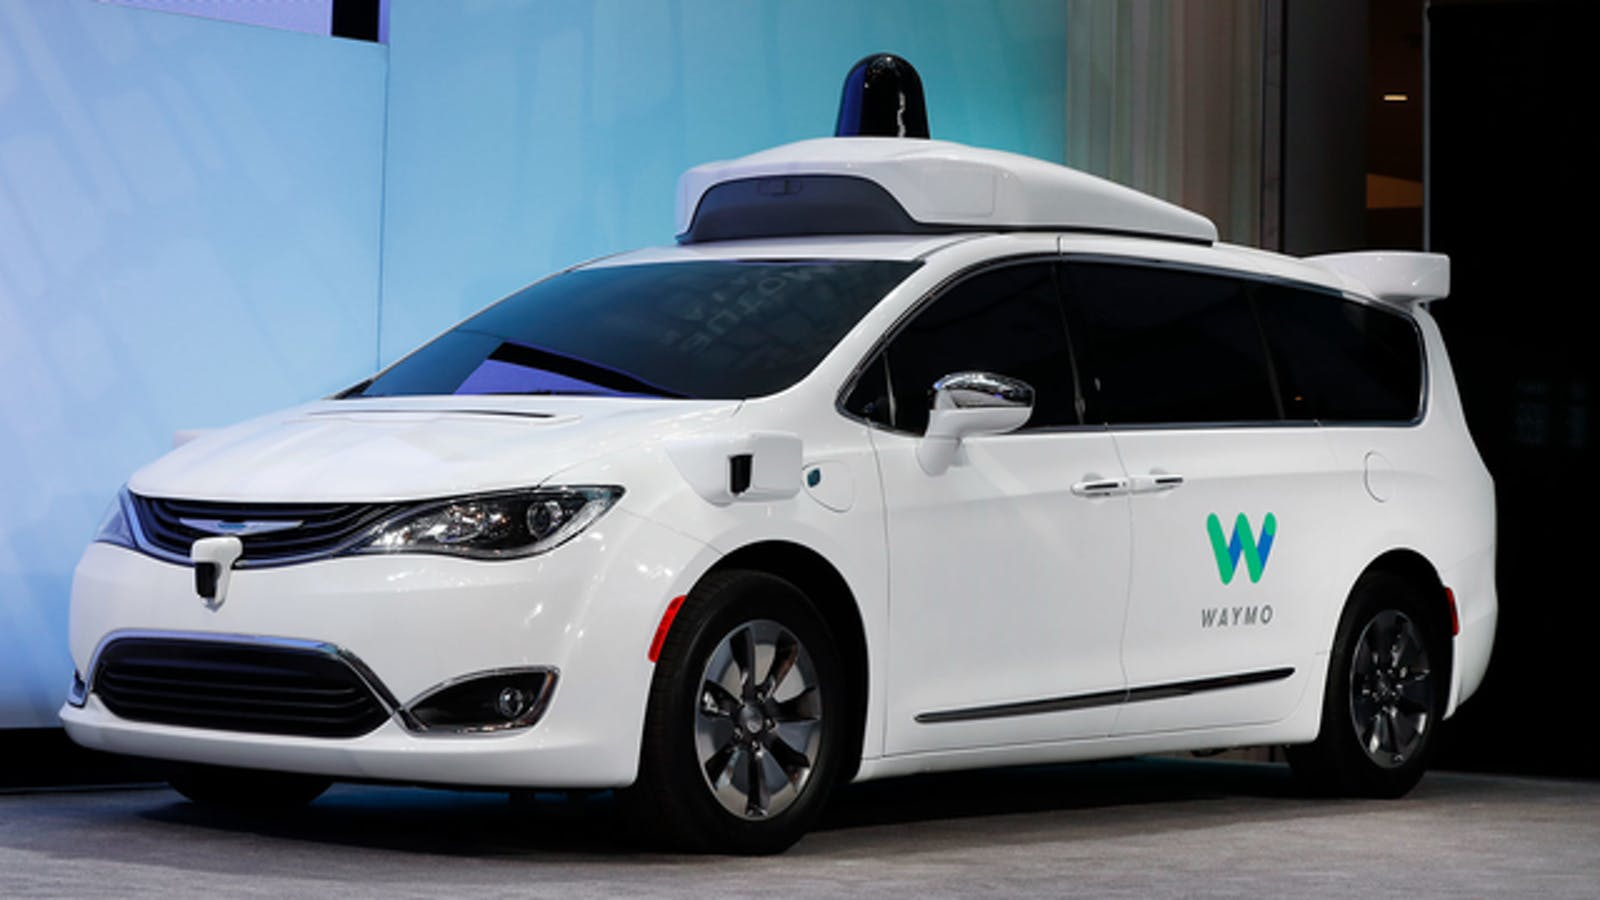 A Chrysler Pacifica hybrid outfitted with Waymo's self-driving technology, displayed at the North American International Auto Show in Detroit. Photo by AP